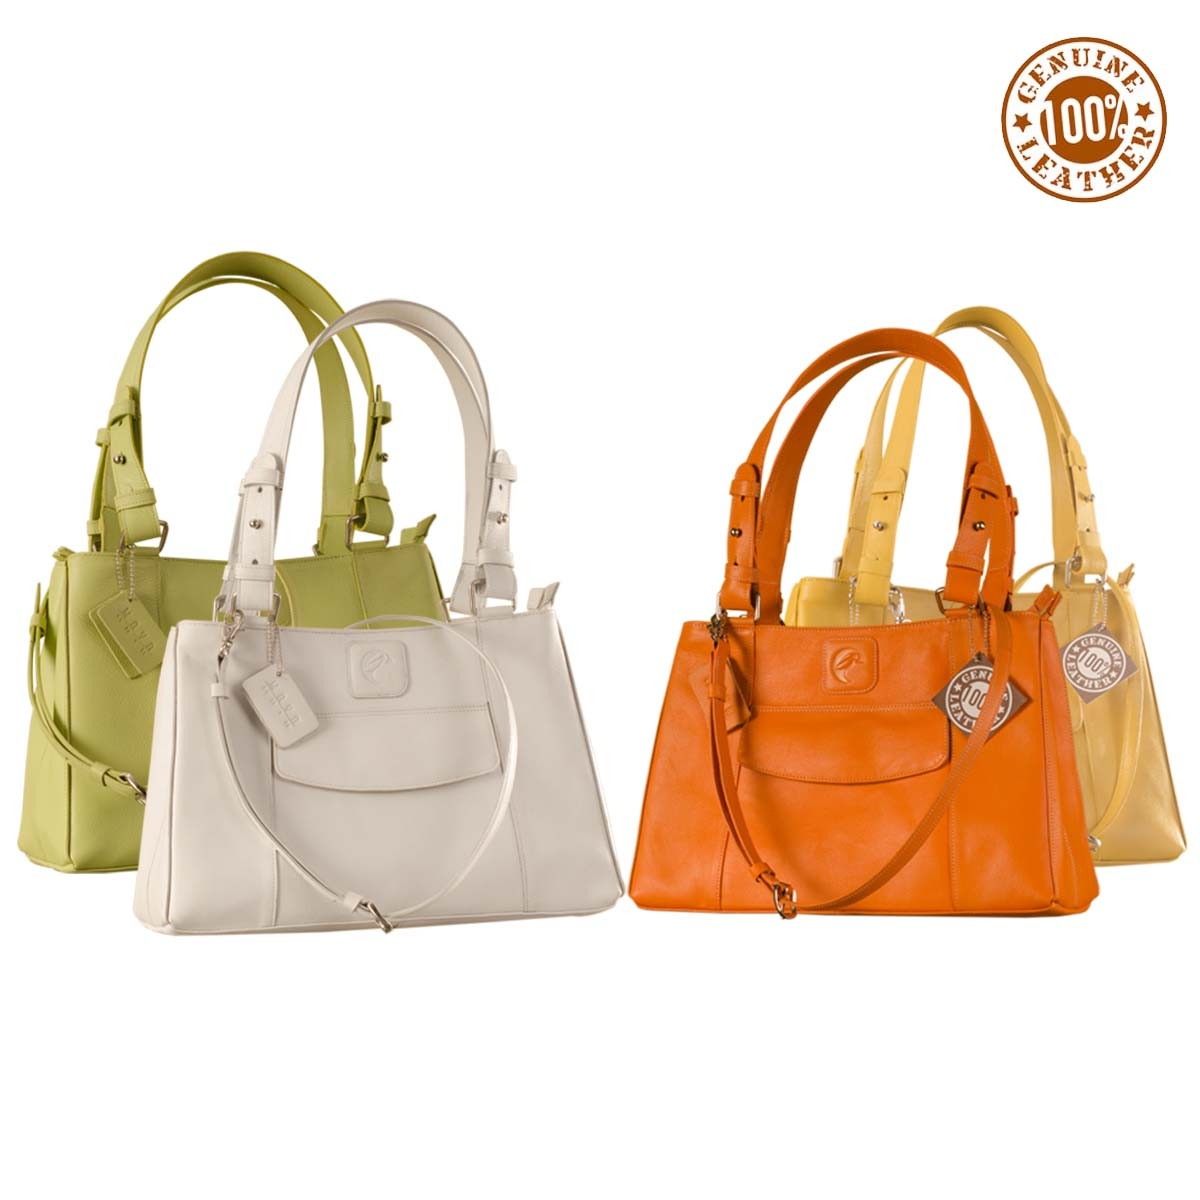 ... Maya Collection YA824v1 by eZeeBags ladies leather handbag - stands  tall in style   function. Zoom 472d85eb76